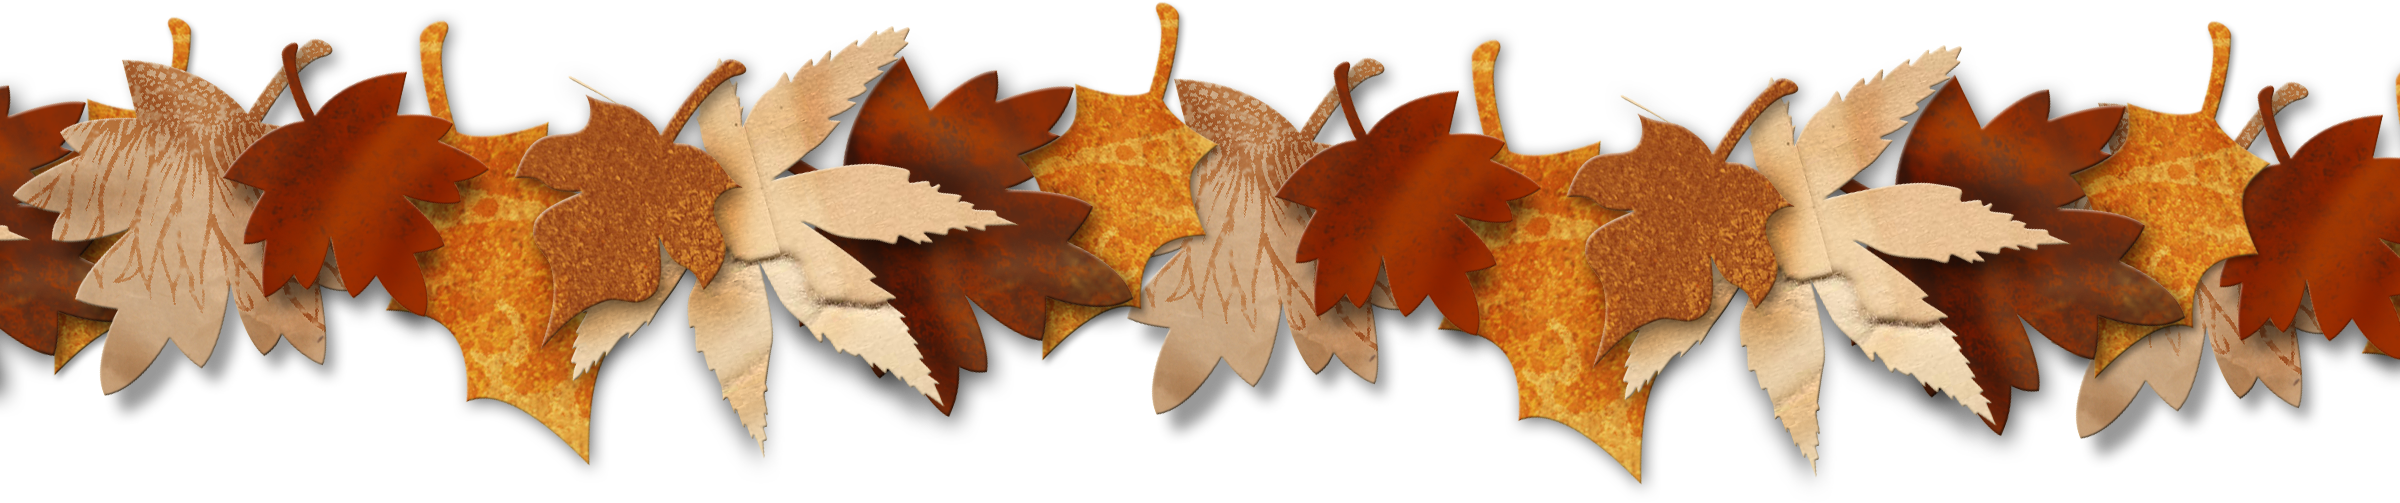 Free Leaves Garland Cliparts, Download Free Clip Art, Free.